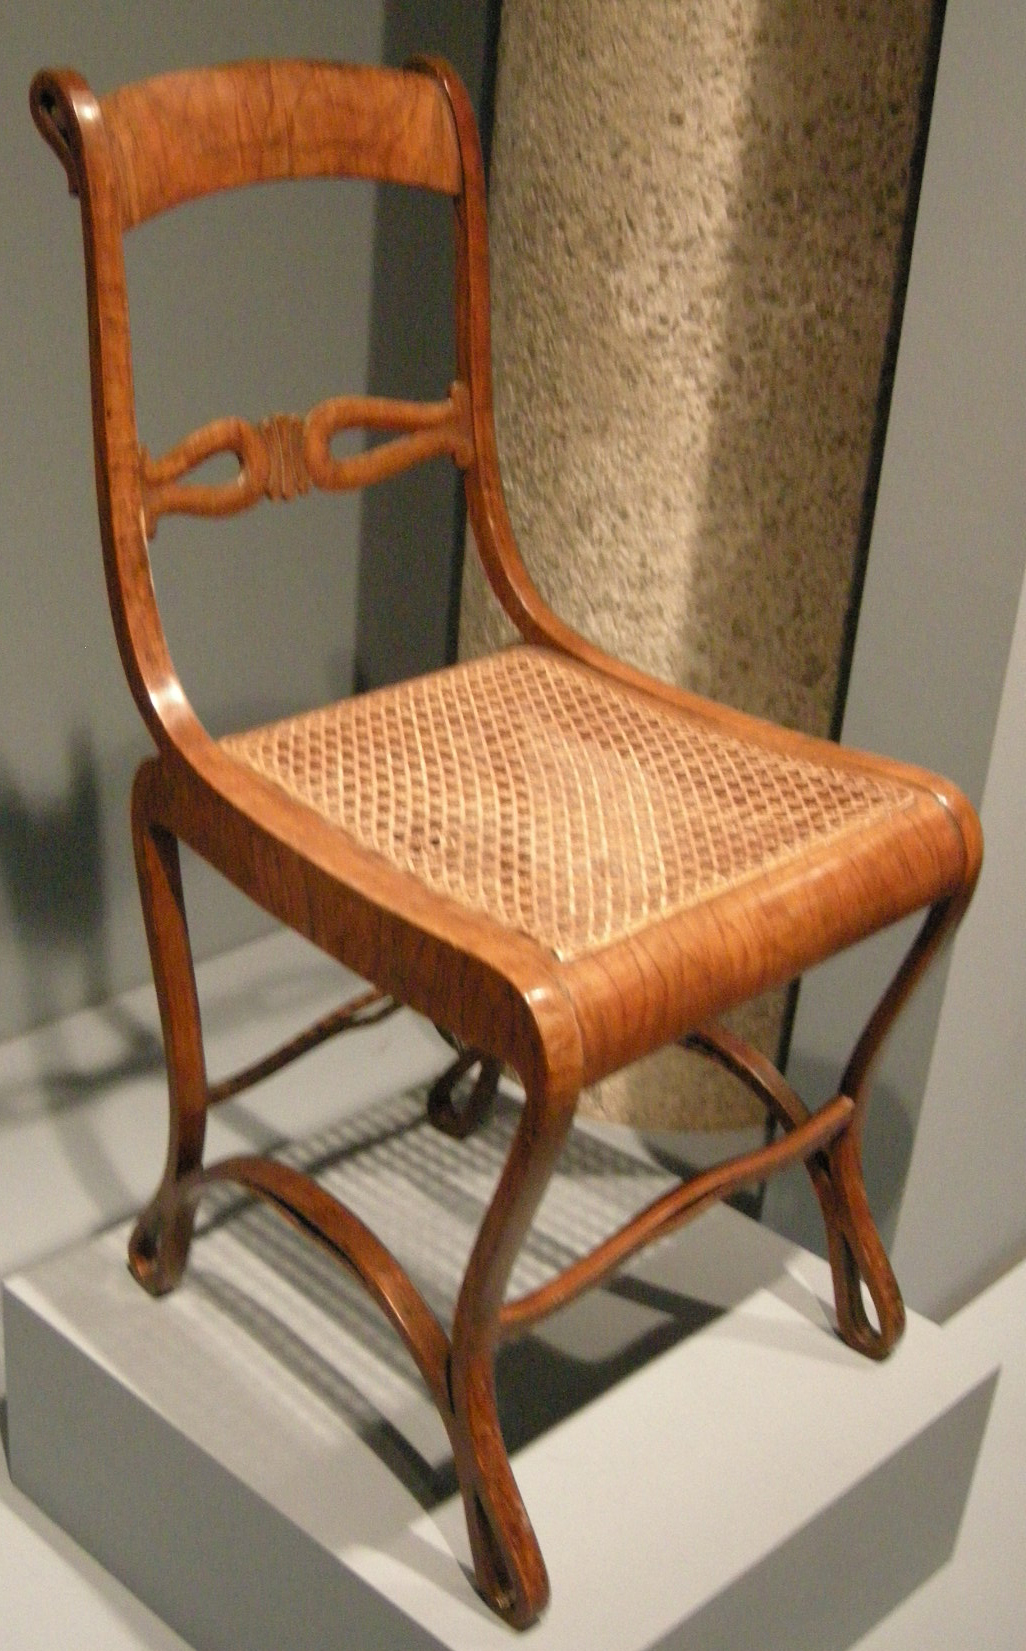 File michael thonet sedia 1836 40 jpg wikipedia - Sedia thonet originale ...